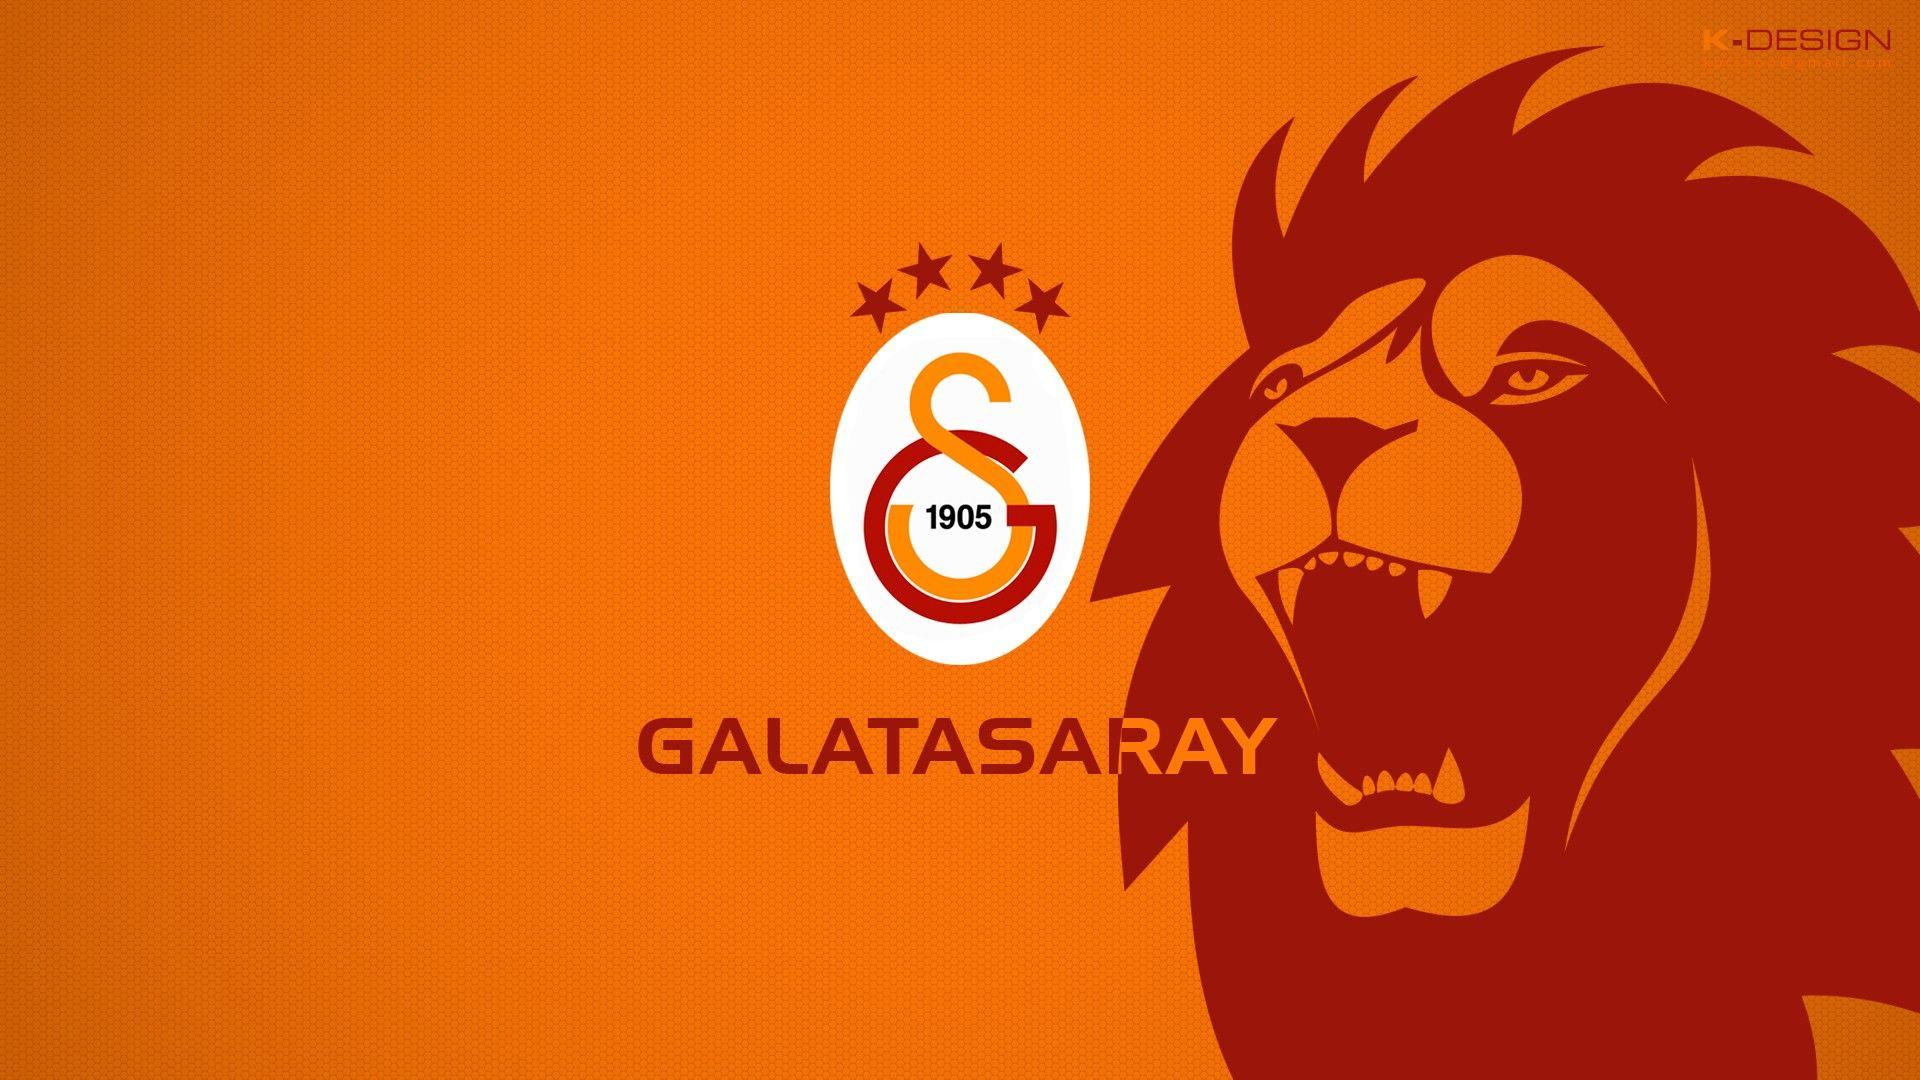 Galatasaray Wallpapers Top Free Galatasaray Backgrounds